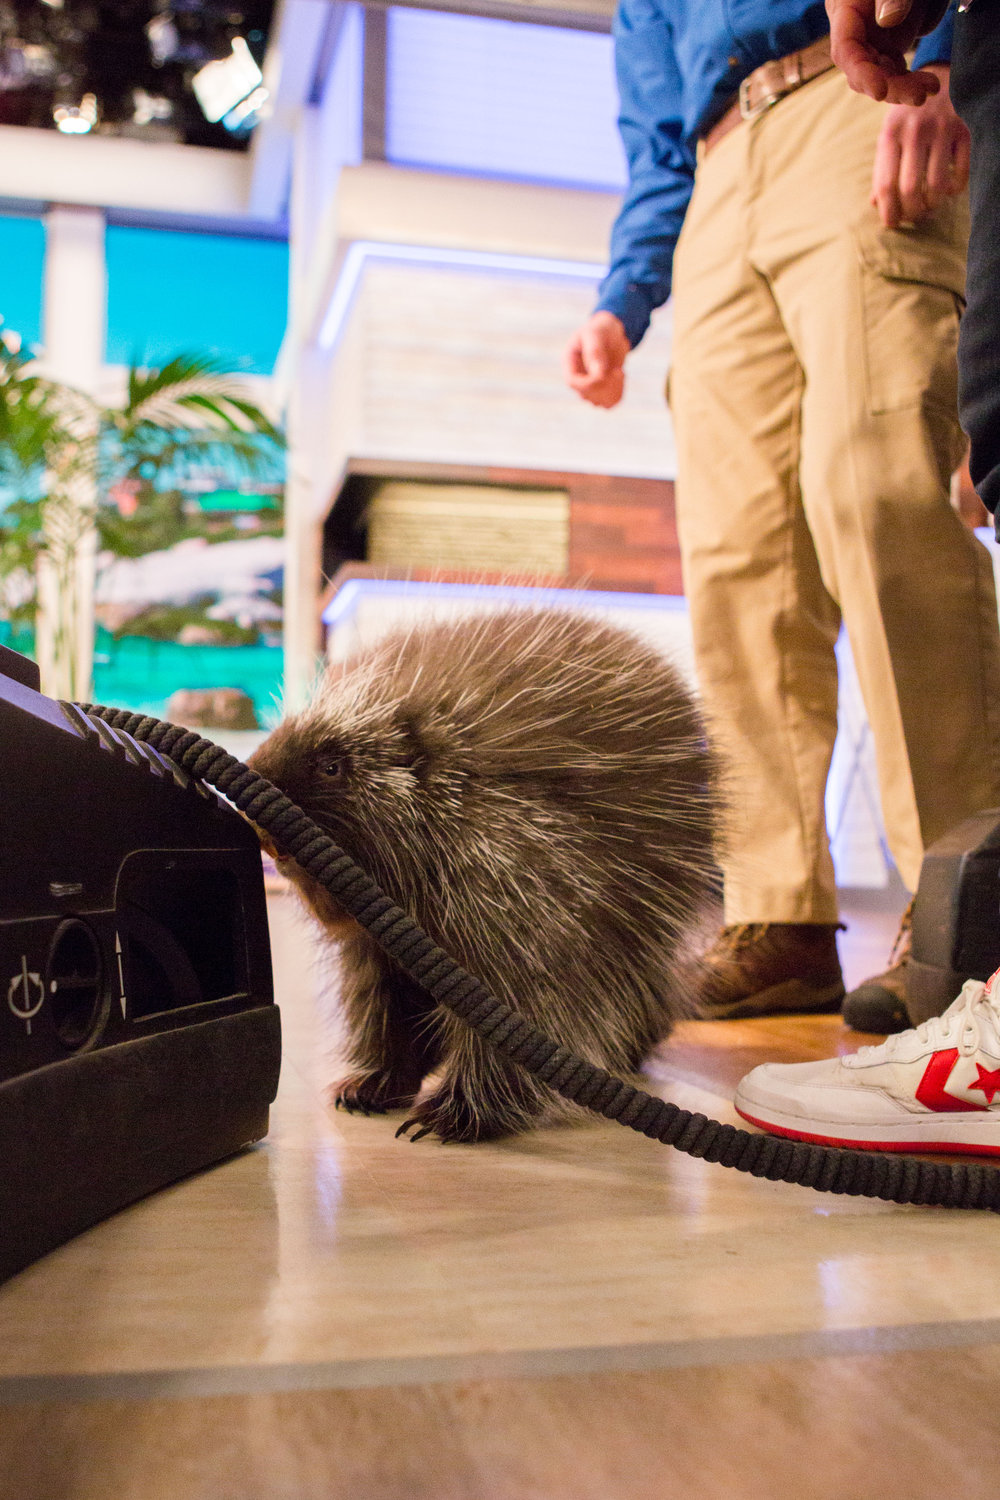 Quilliam the North American Porcupine checking out a camera on set.  Photo Credit: Nathan Congleton,  Today Show  Photographer.